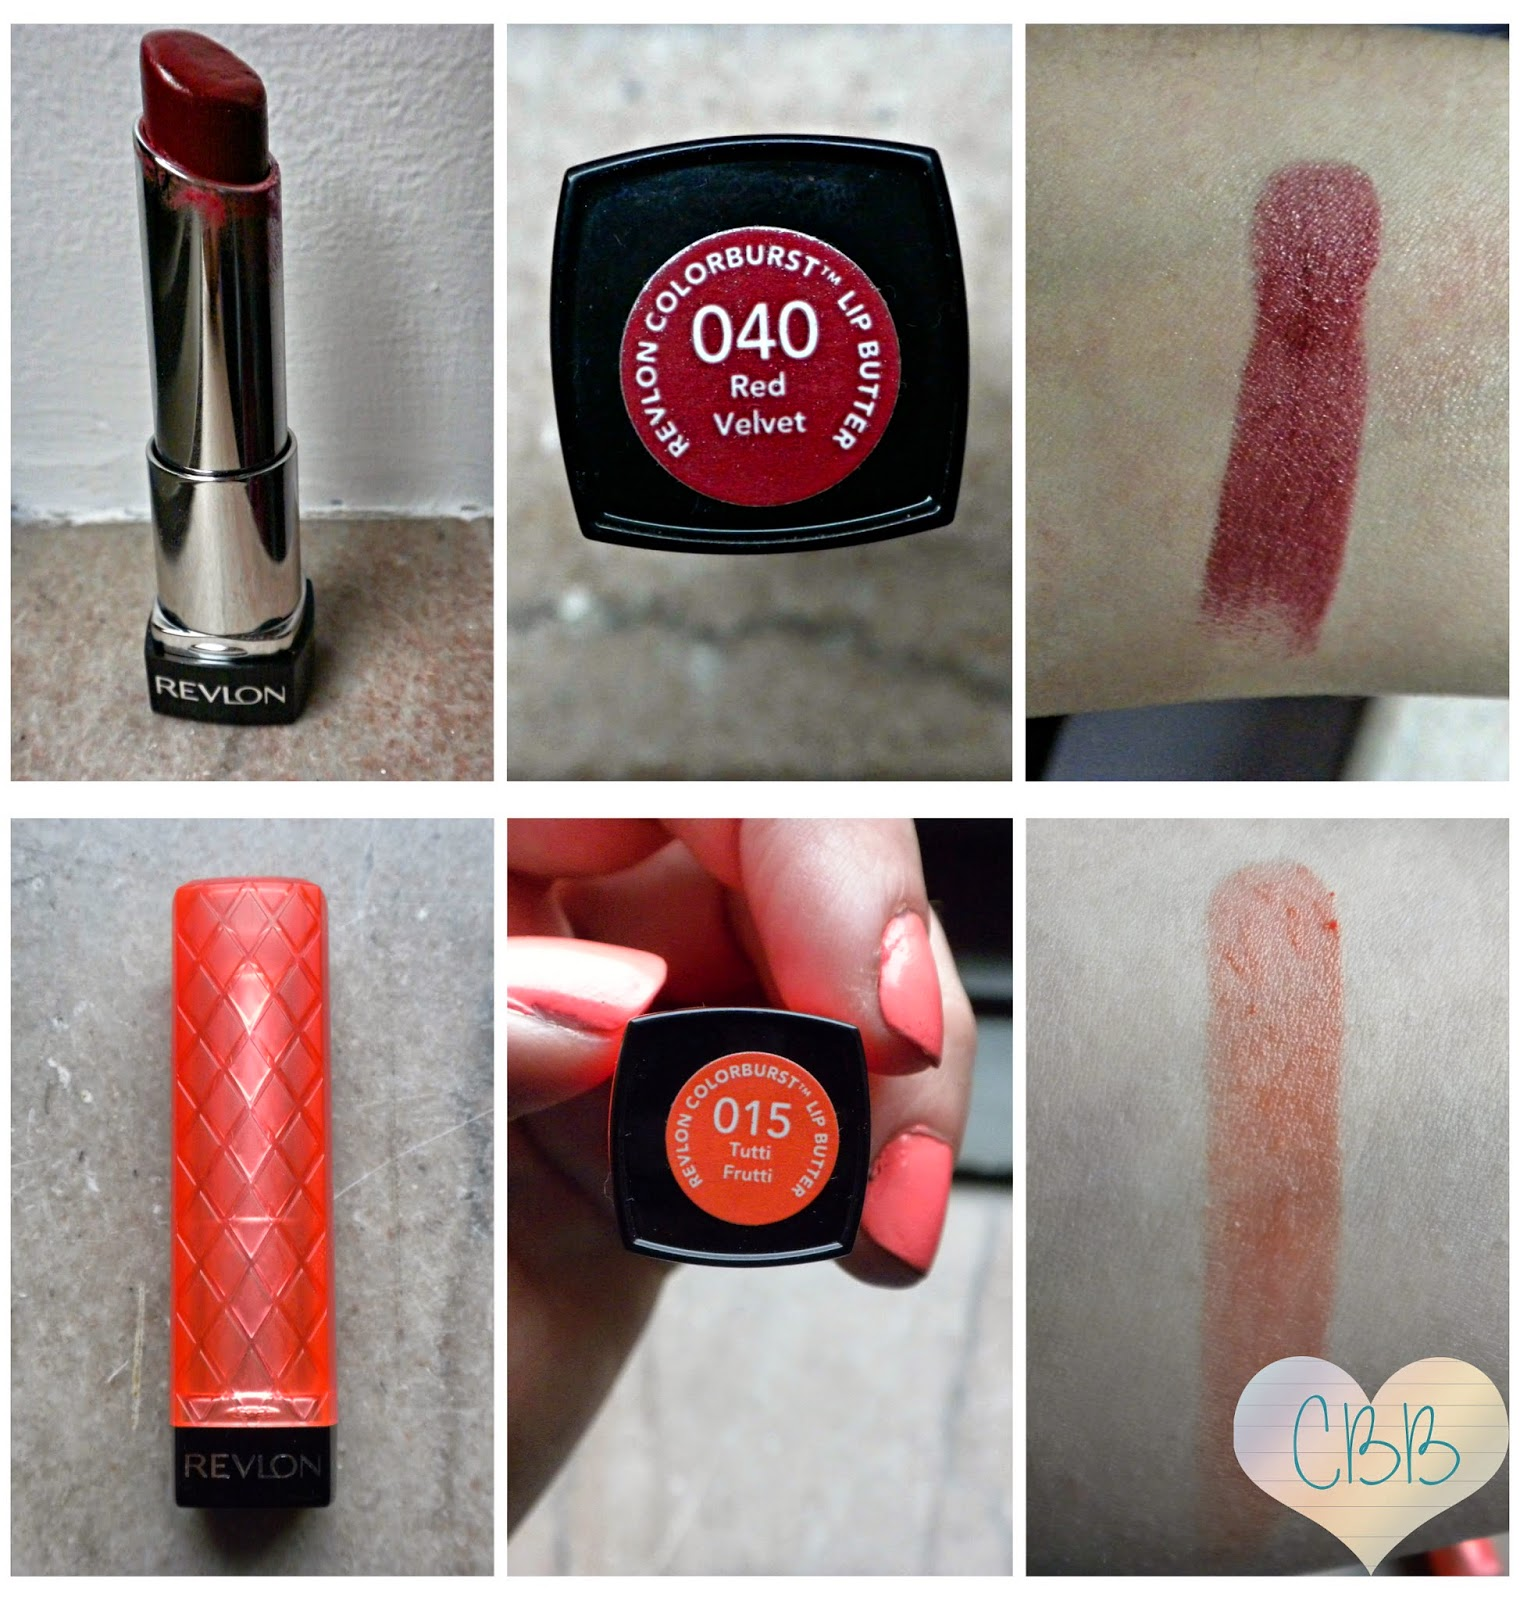 Lipstick: REVLON Colorburst Lip Butter ($8.50)